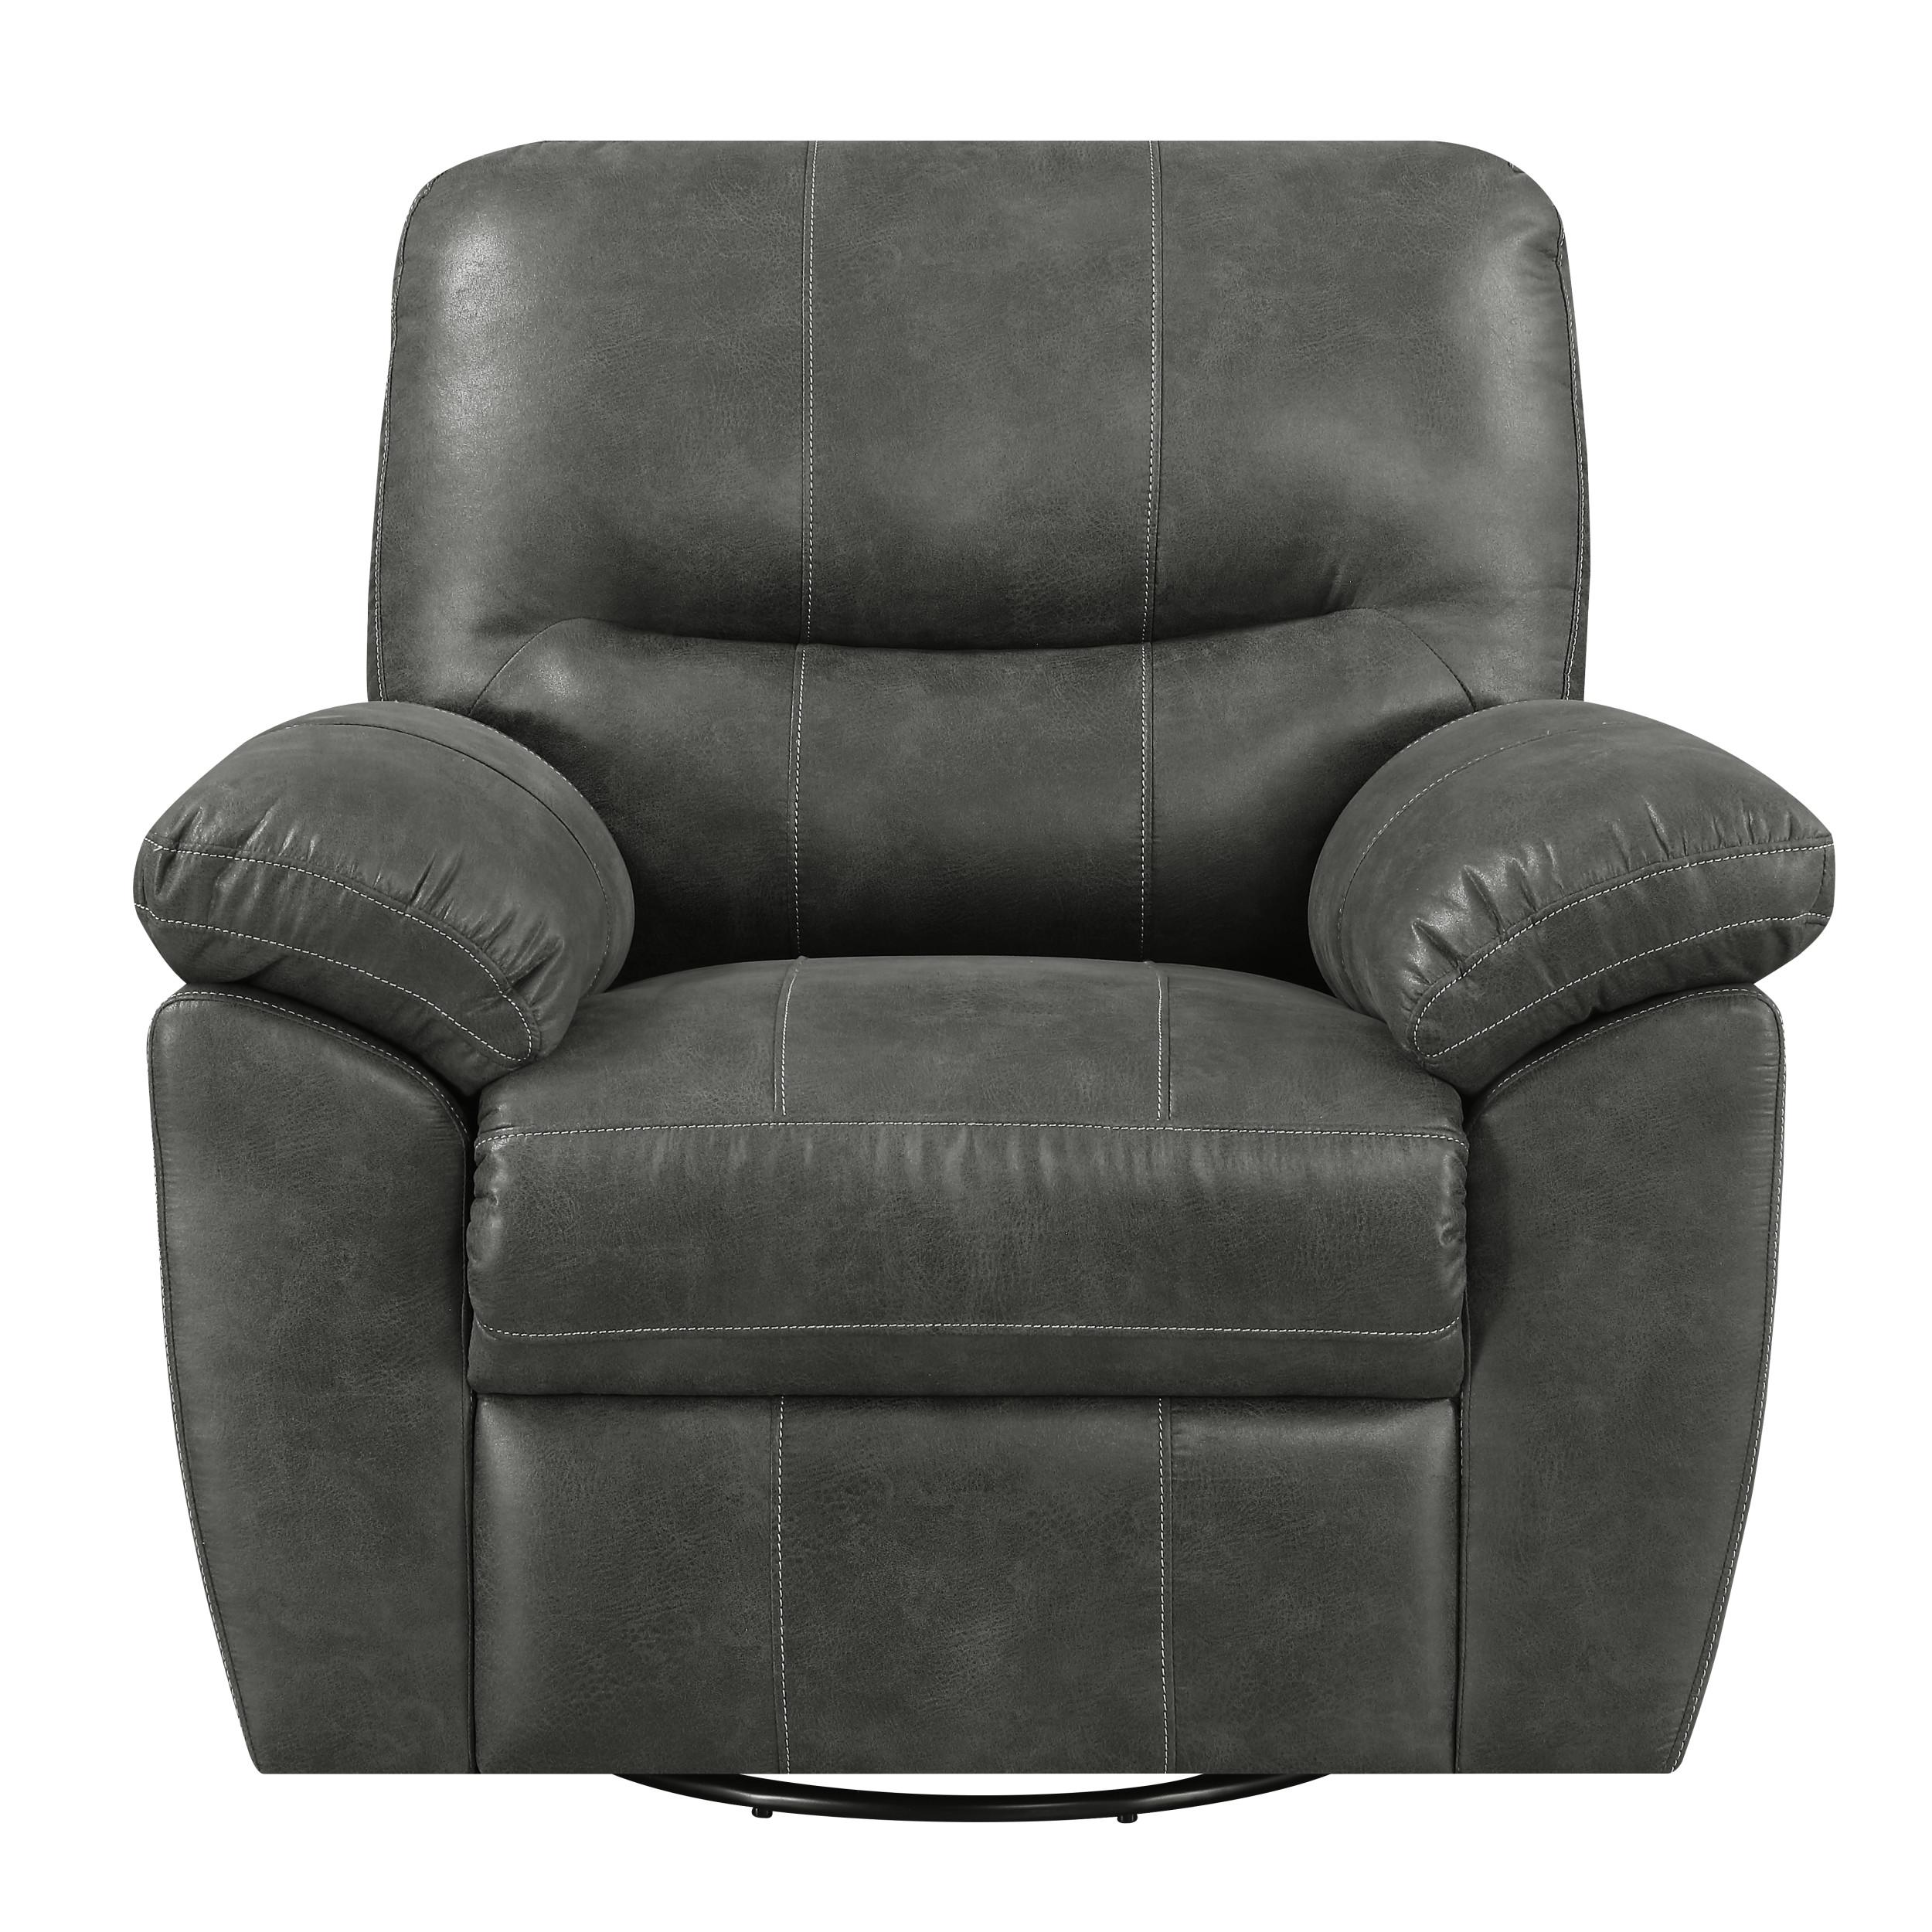 Emerald Home Nelson Charcoal Gray Fabric Recliner Click To Enlarge